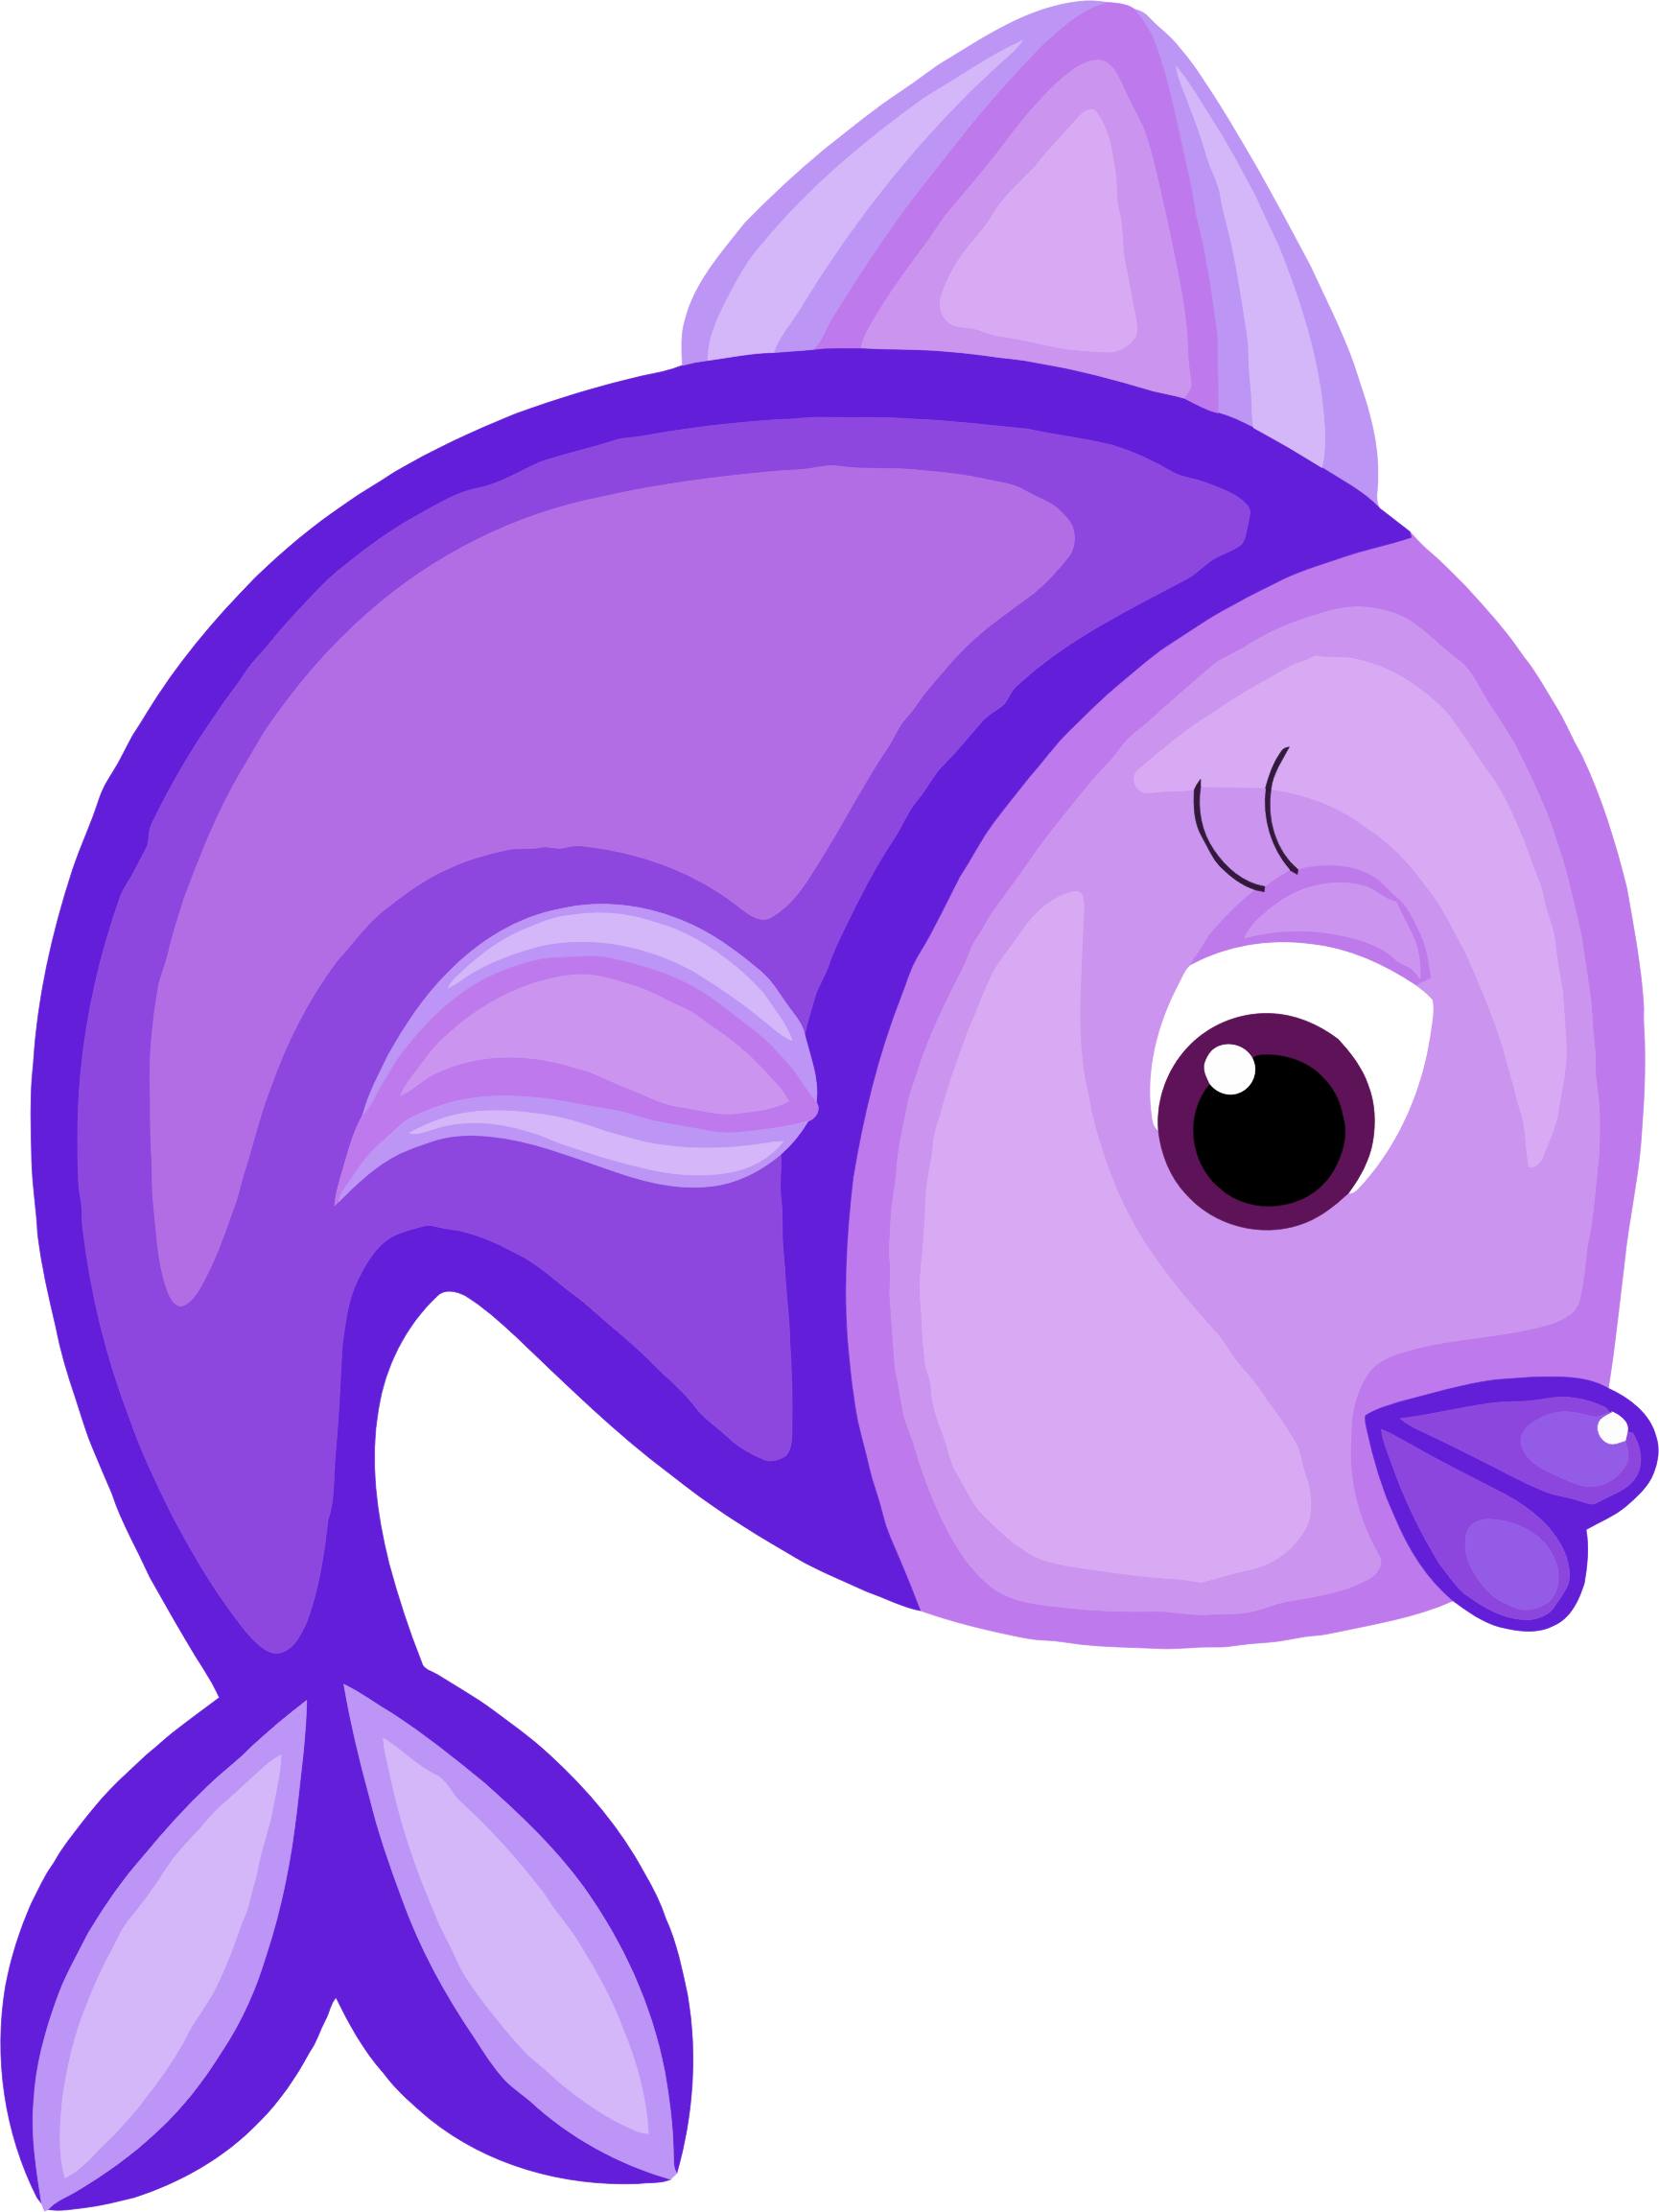 Fish clipart purple, Fish purple Transparent FREE for ...